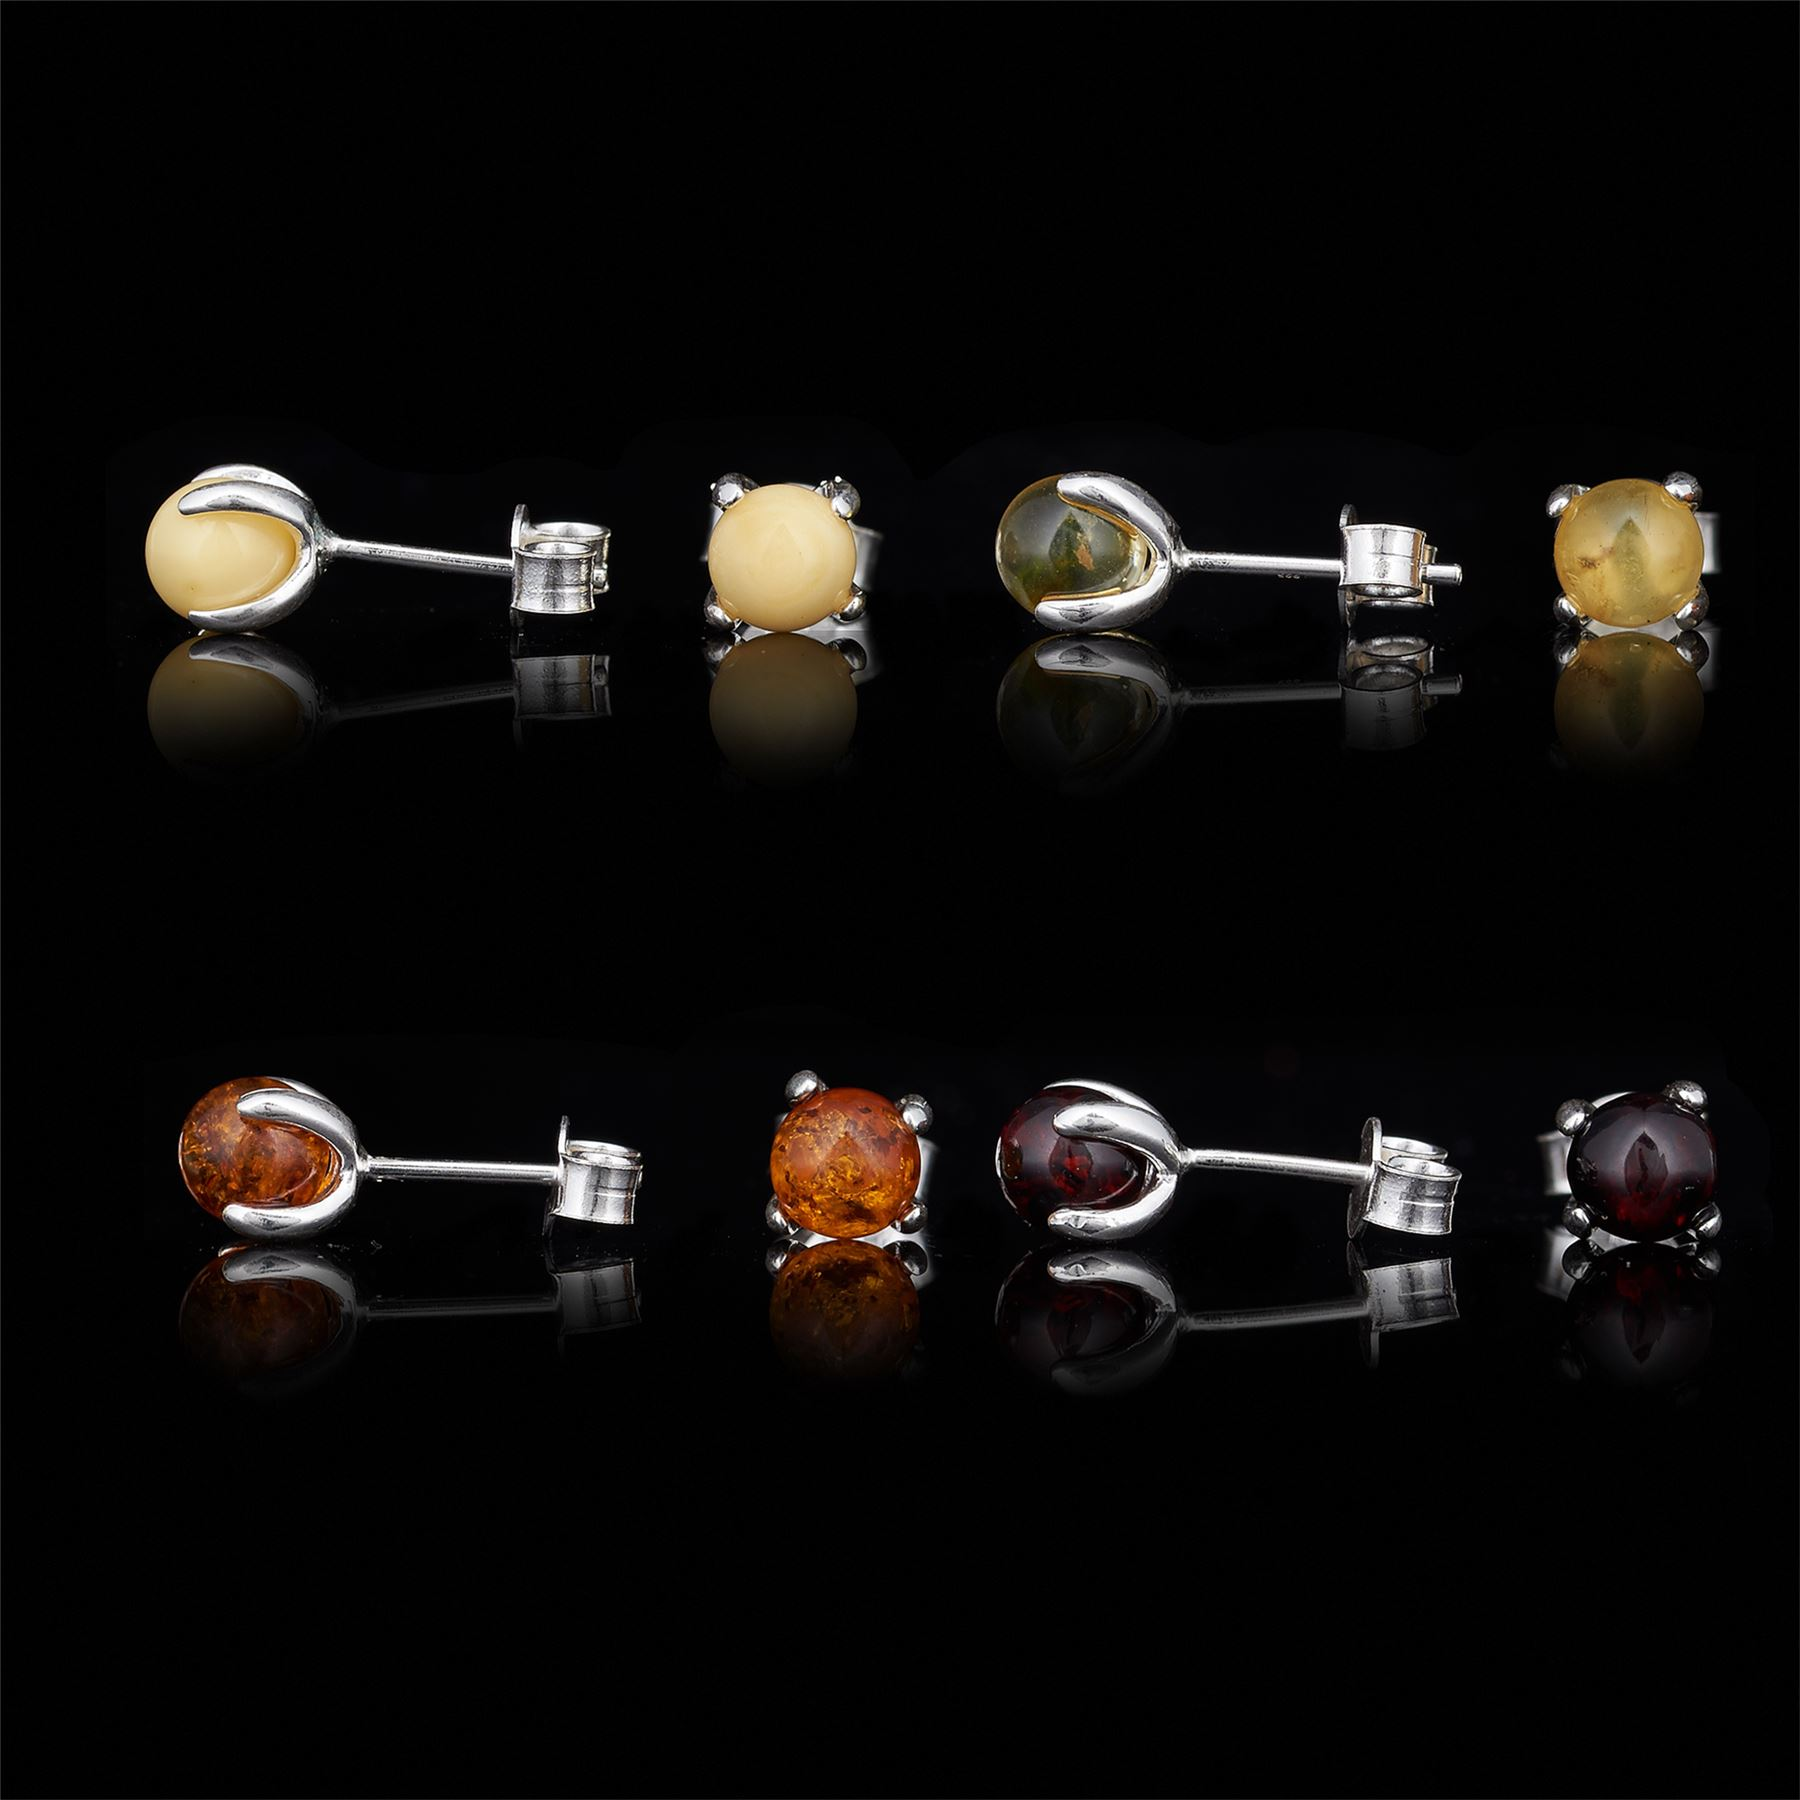 Amberta-Genuine-925-Sterling-Silver-Earrings-with-Natural-Baltic-Amber-Gemstone thumbnail 104